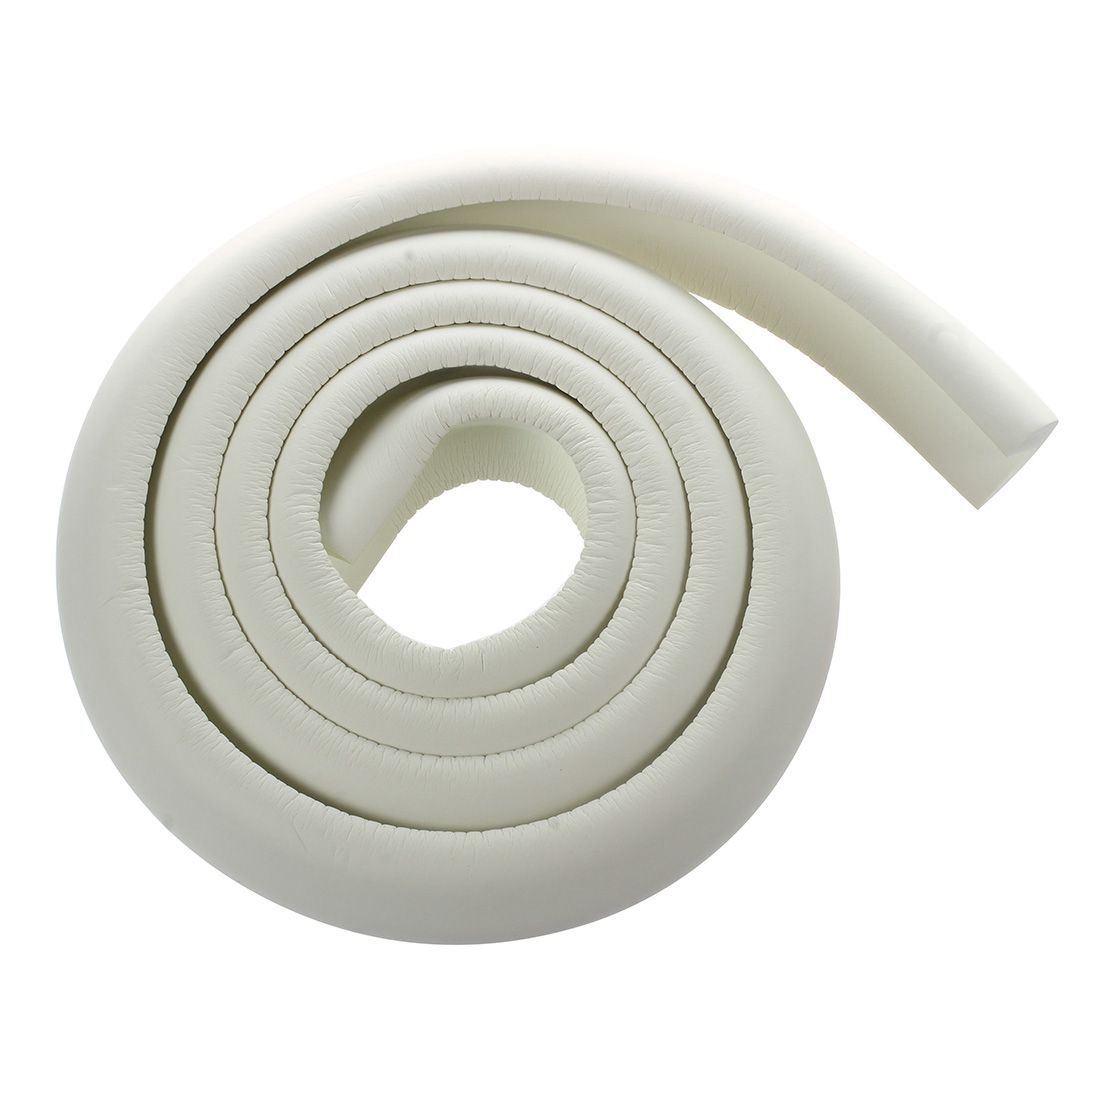 Childproof Edge Corner Guard Cushion Length 2M Included 3M Adhesive (White)